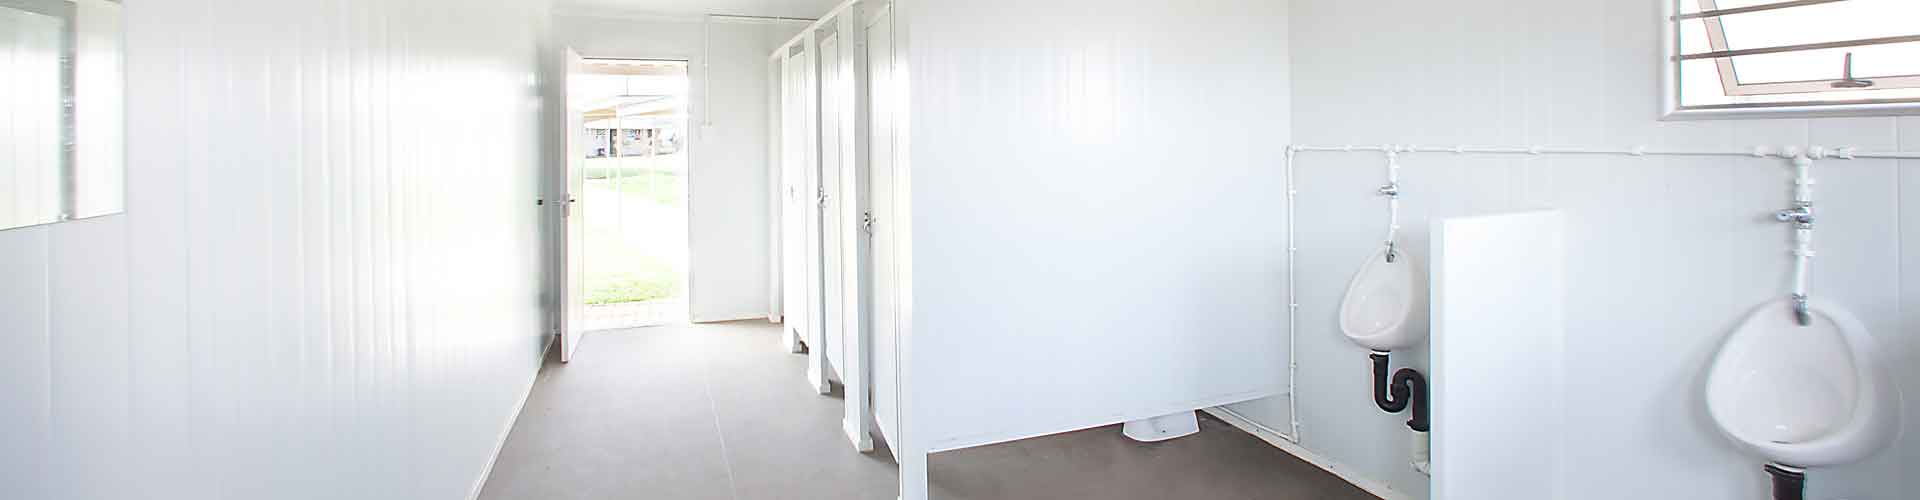 Kwikspace's prefabricated and modular buildings are ideal for ablutions.